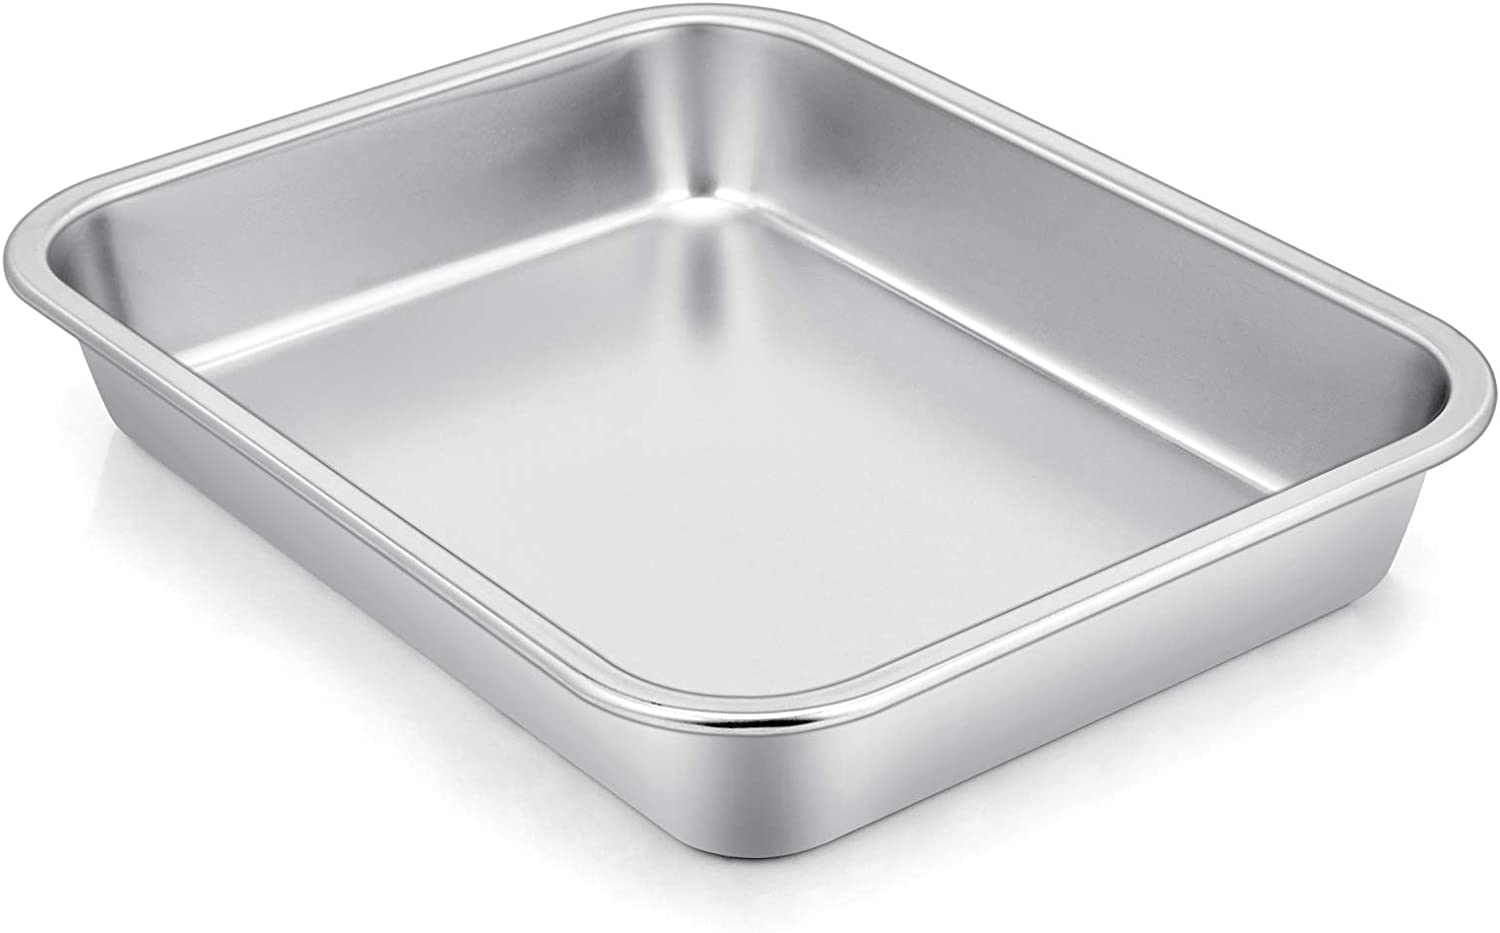 "P&P CHEF High-Sided Cookie Sheet Pan, Stainless Steel Rectangular Lasagna Pan, Size 10.6""x 8.25"" x 1.7"" Inches, Perfect for Most Toaster Oven & One Person Use, Non Toxic & Heavy Duty & Easy Clean"